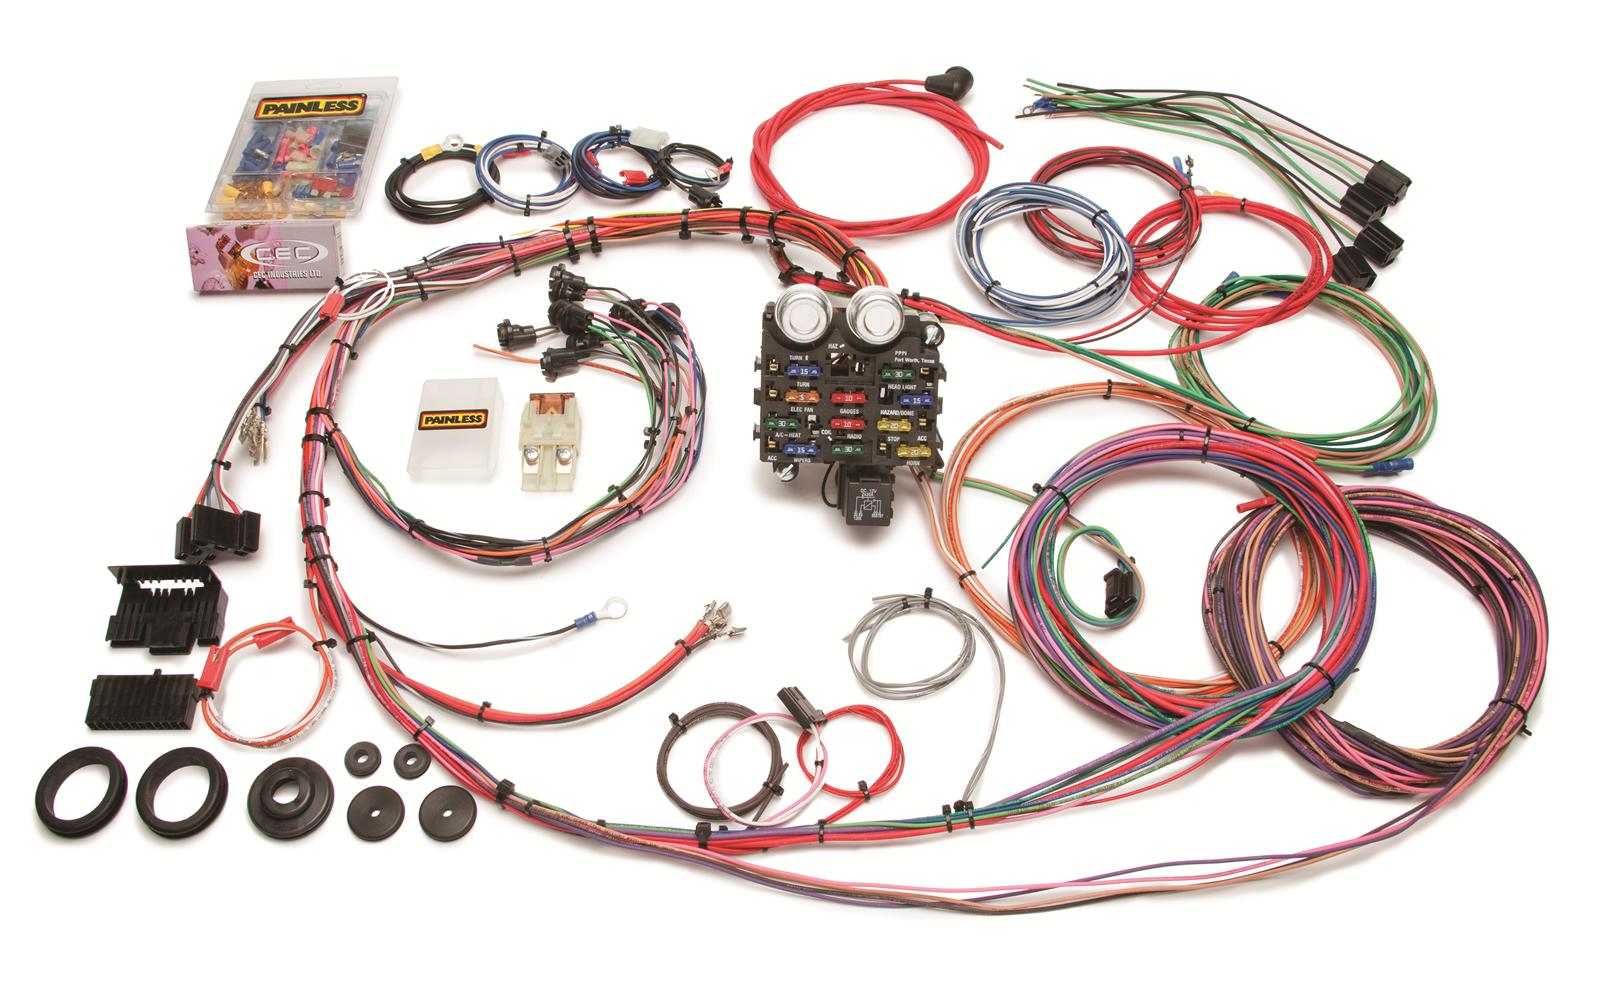 1985 C10 Wire Harness Great Design Of Wiring Diagram Chevy Truck Ebay 31 Images 1987